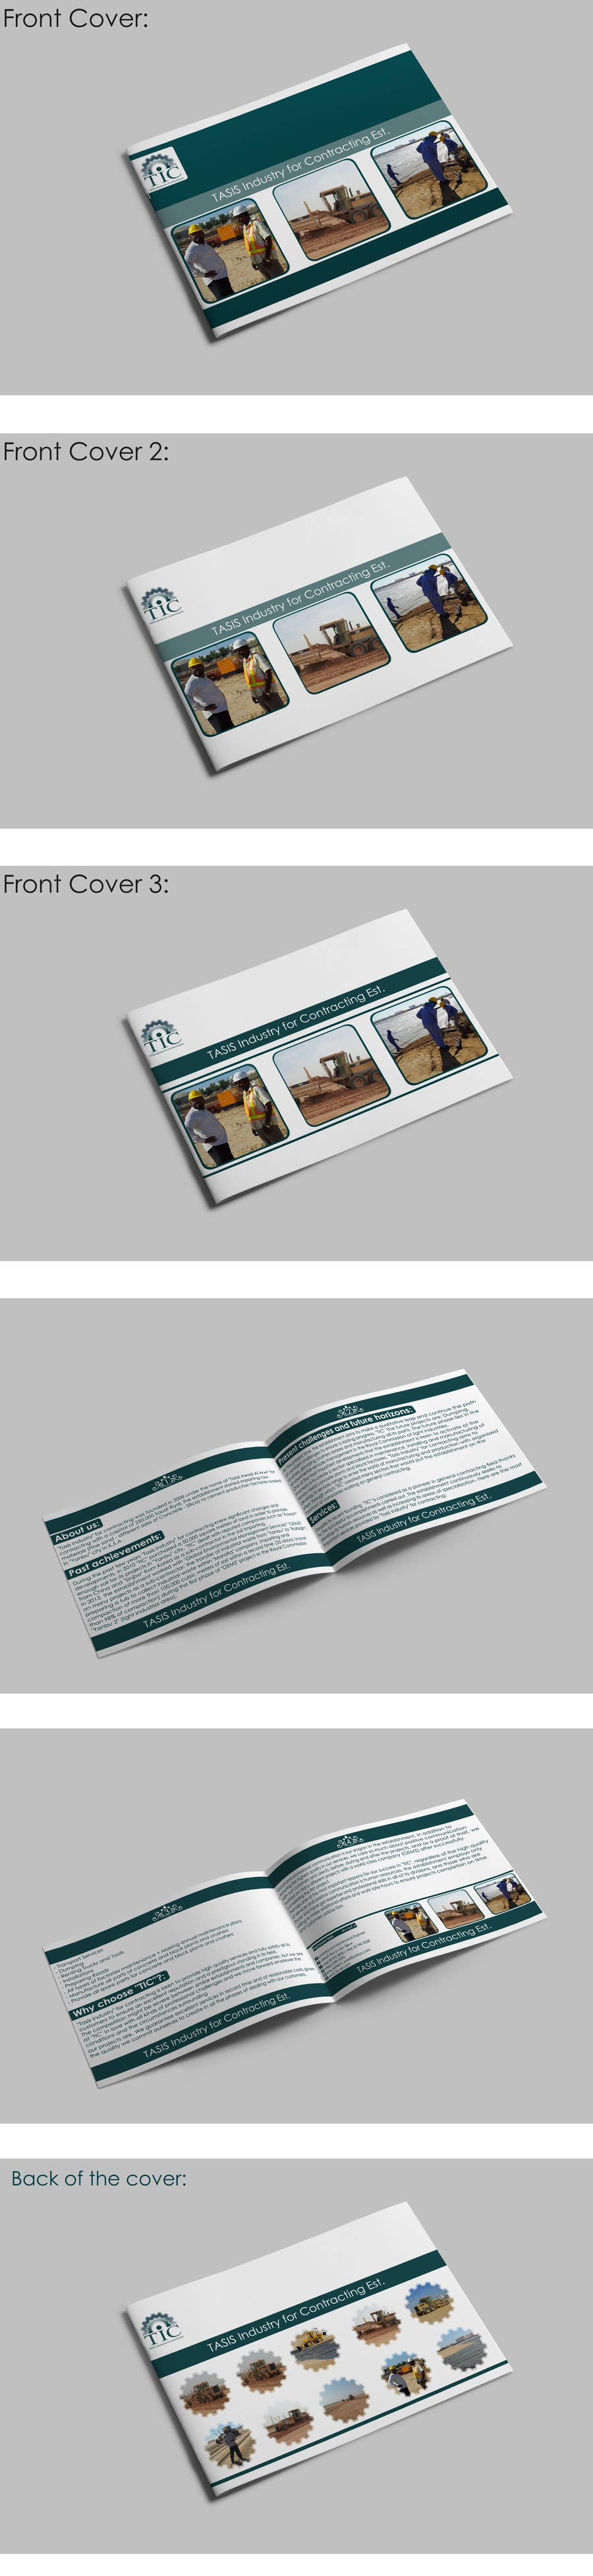 Konkurrenceindlæg #                                        5                                      for                                         Company Profile Design for Contracting Company